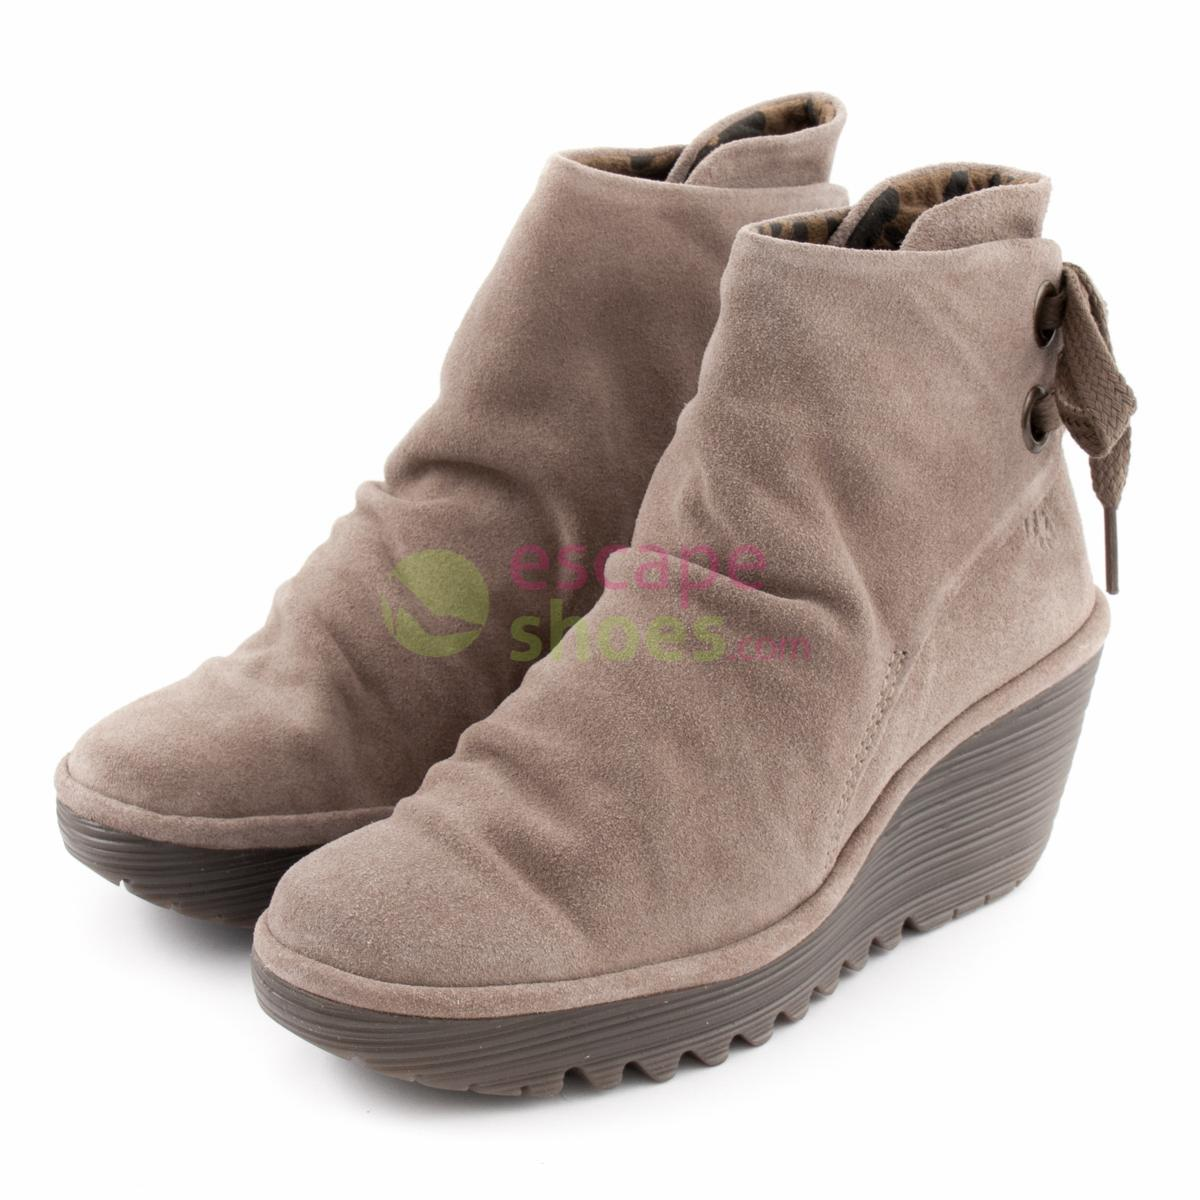 ea9df10a3f4 Buy your Ankle Boots FLY LONDON Yellow Yama Taupe P500326023 here ...